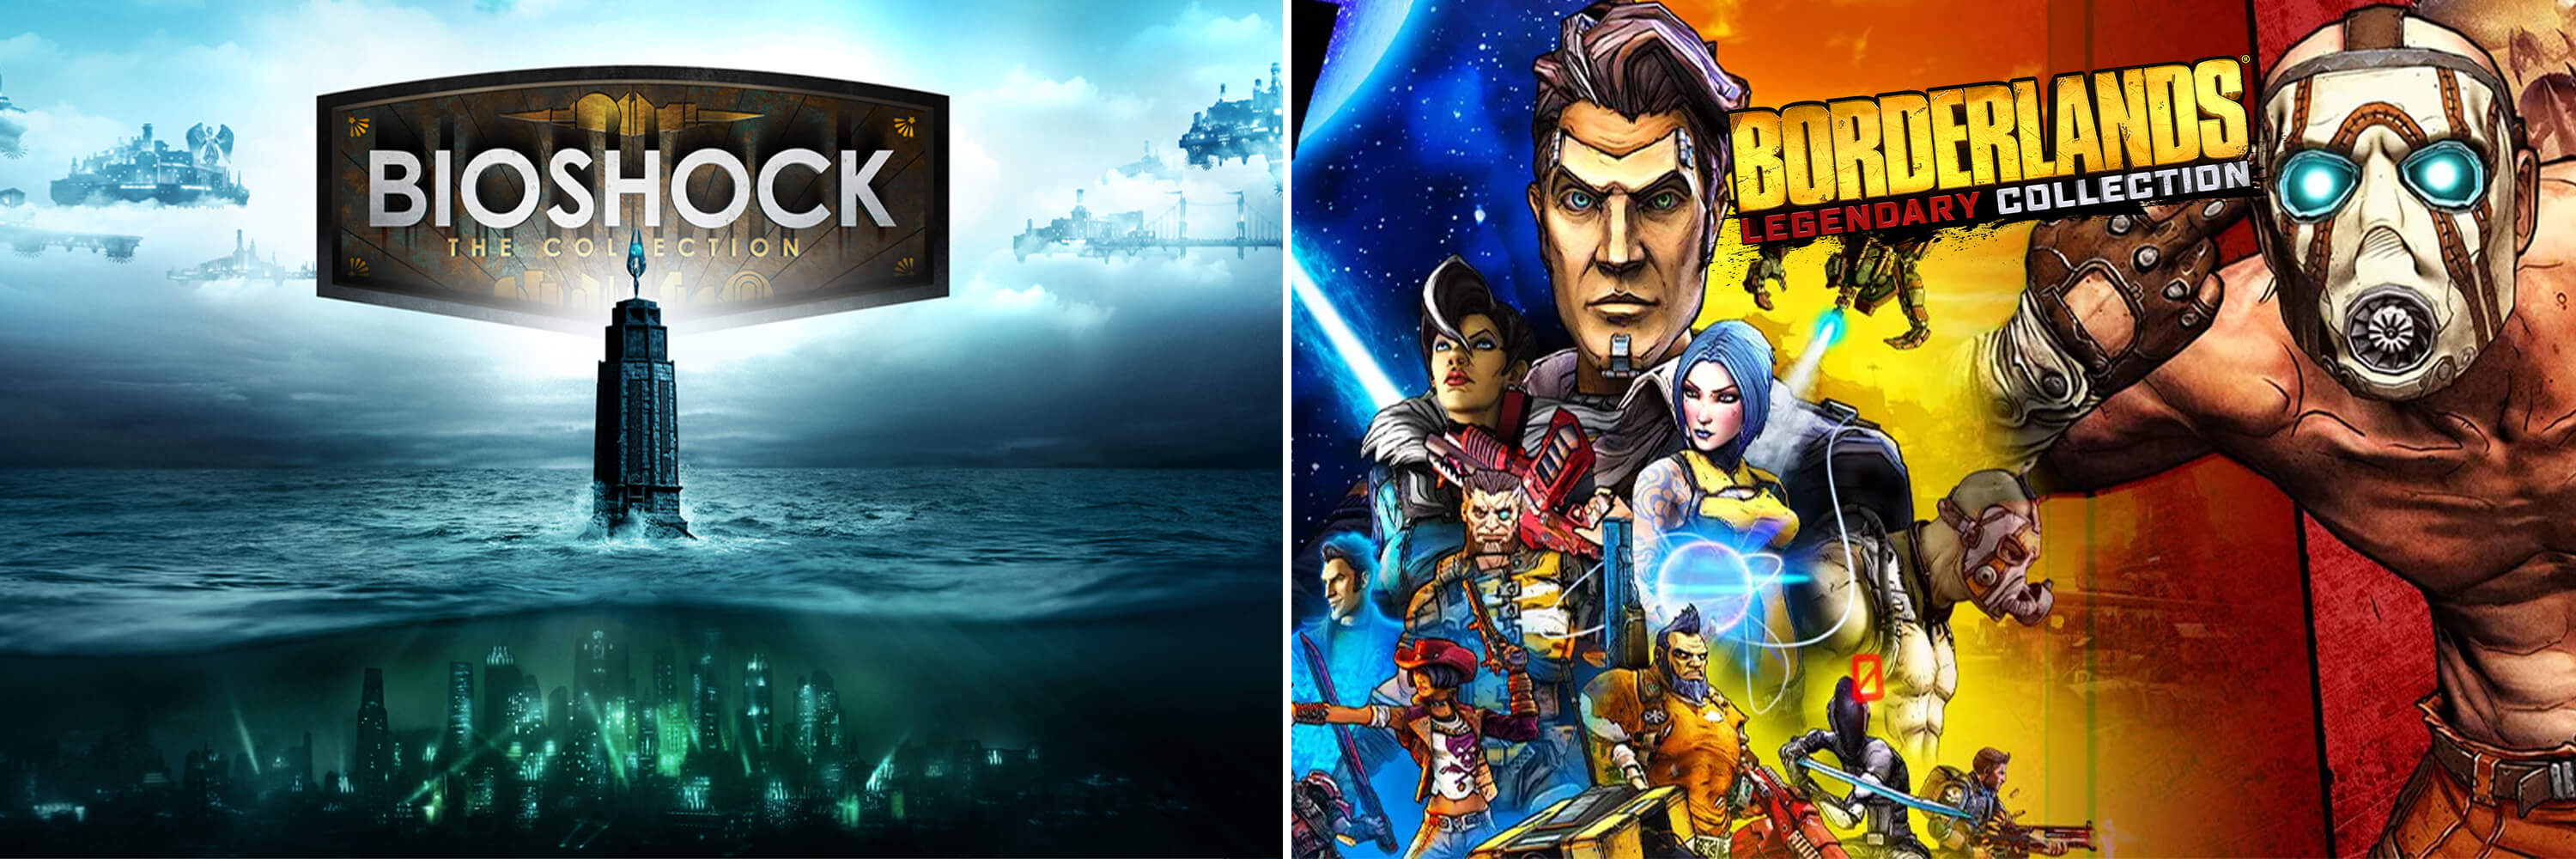 2K   BioShock: The Collection and Borderlands Legendary Collection